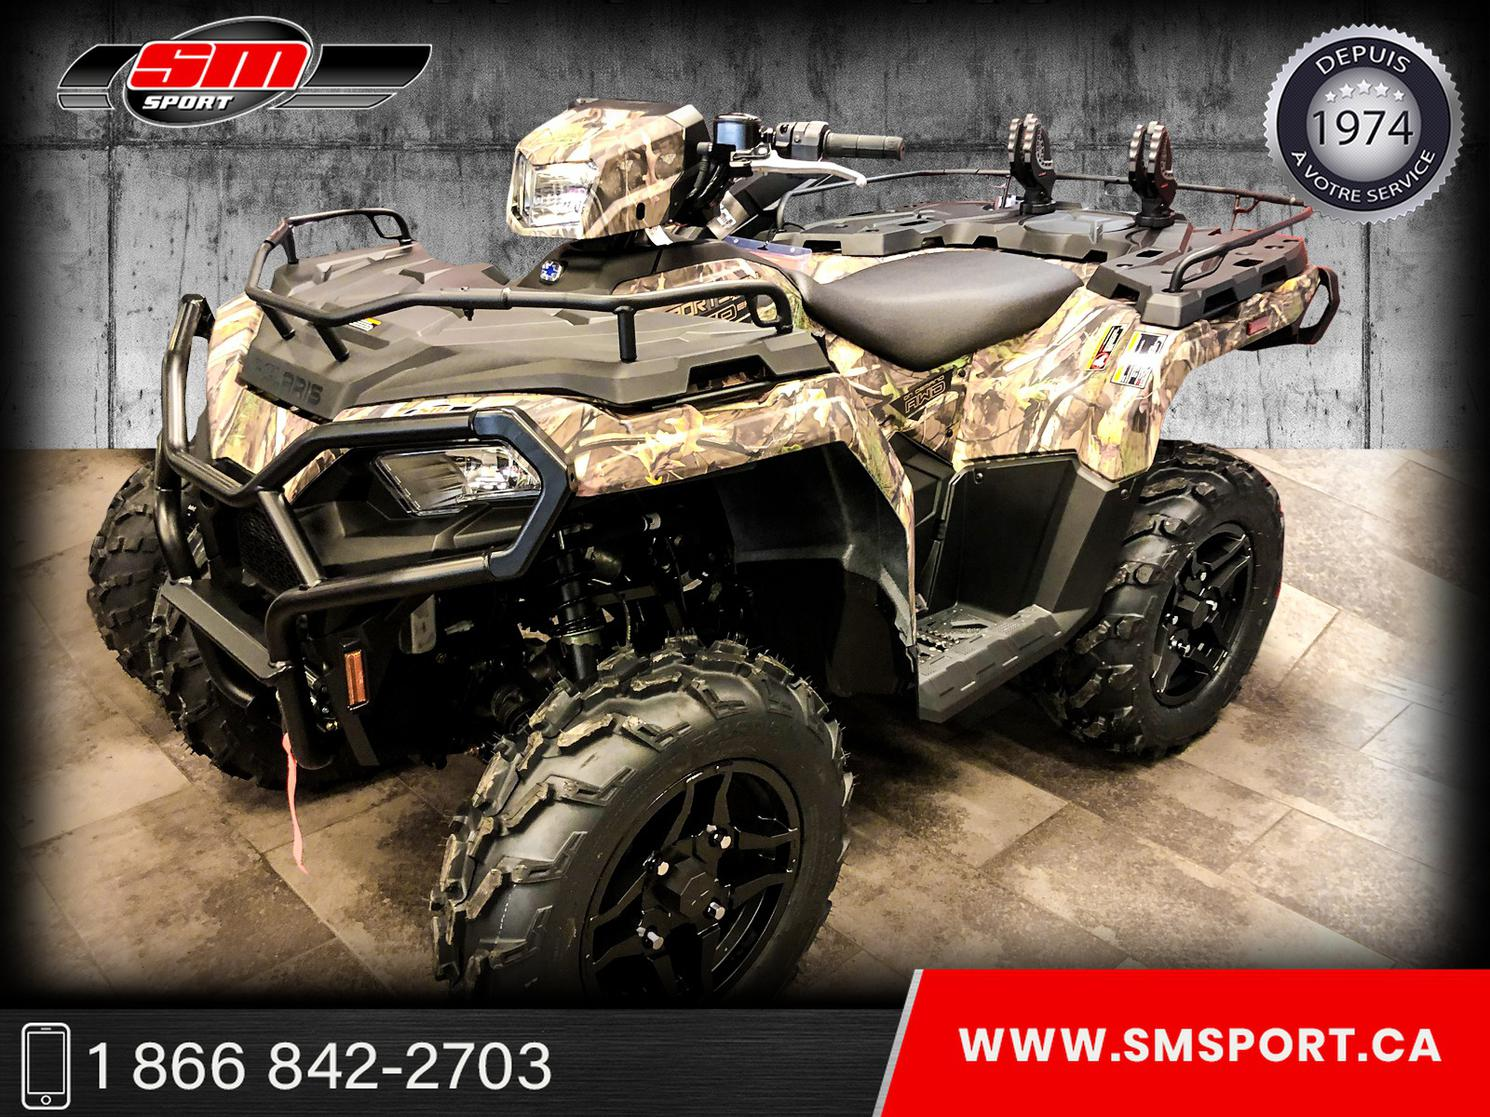 2021 Polaris SPORTSMAN 570 EPS HUNT EDITION - DISPONIBLE EN STOCK